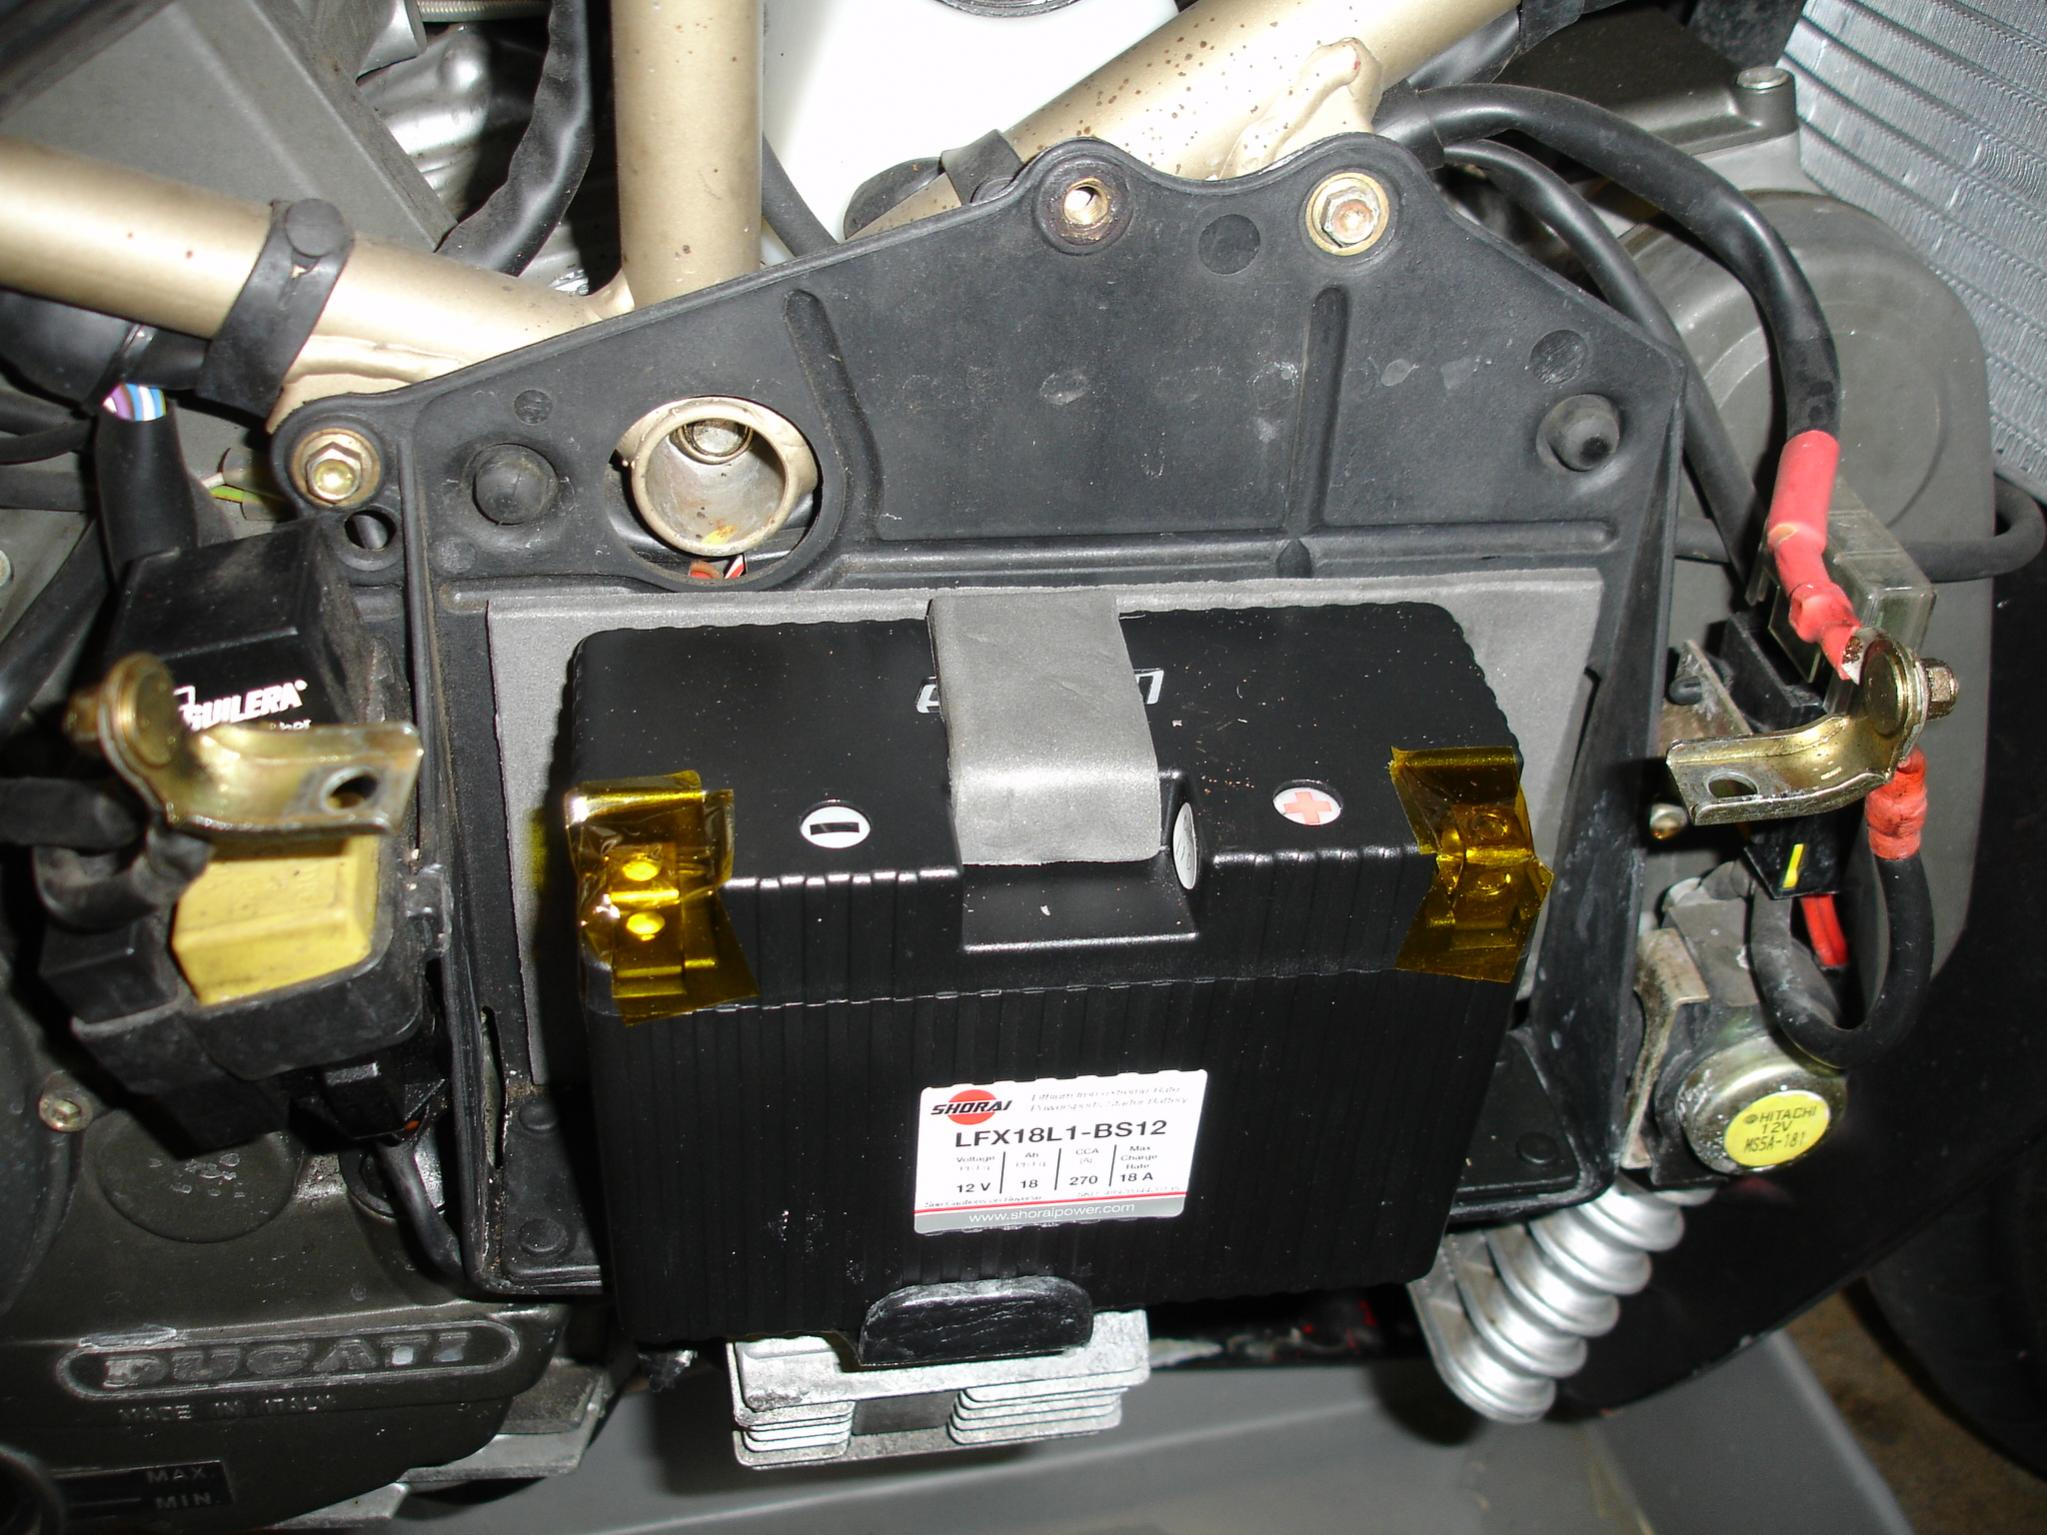 shorai battery install on my '97 916 - ducati.ms - the ultimate